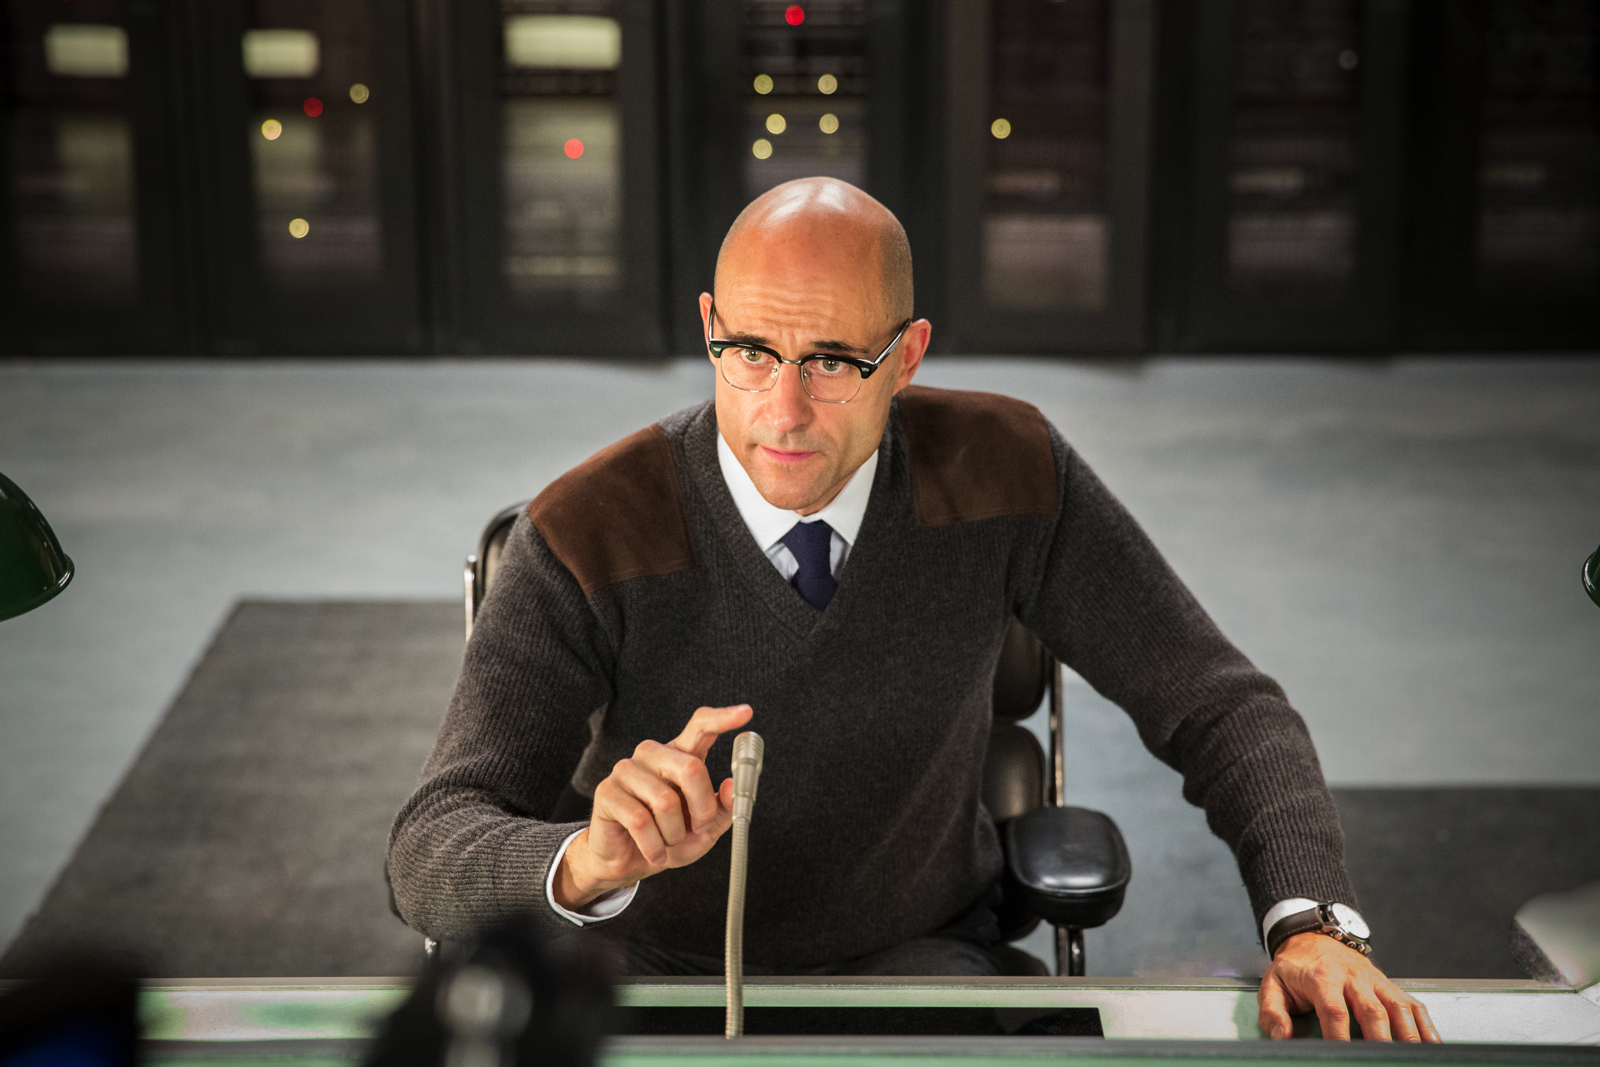 Shazam! Fury of the Gods: Mark Strong Says He Is Waiting To Hear About His Involvement